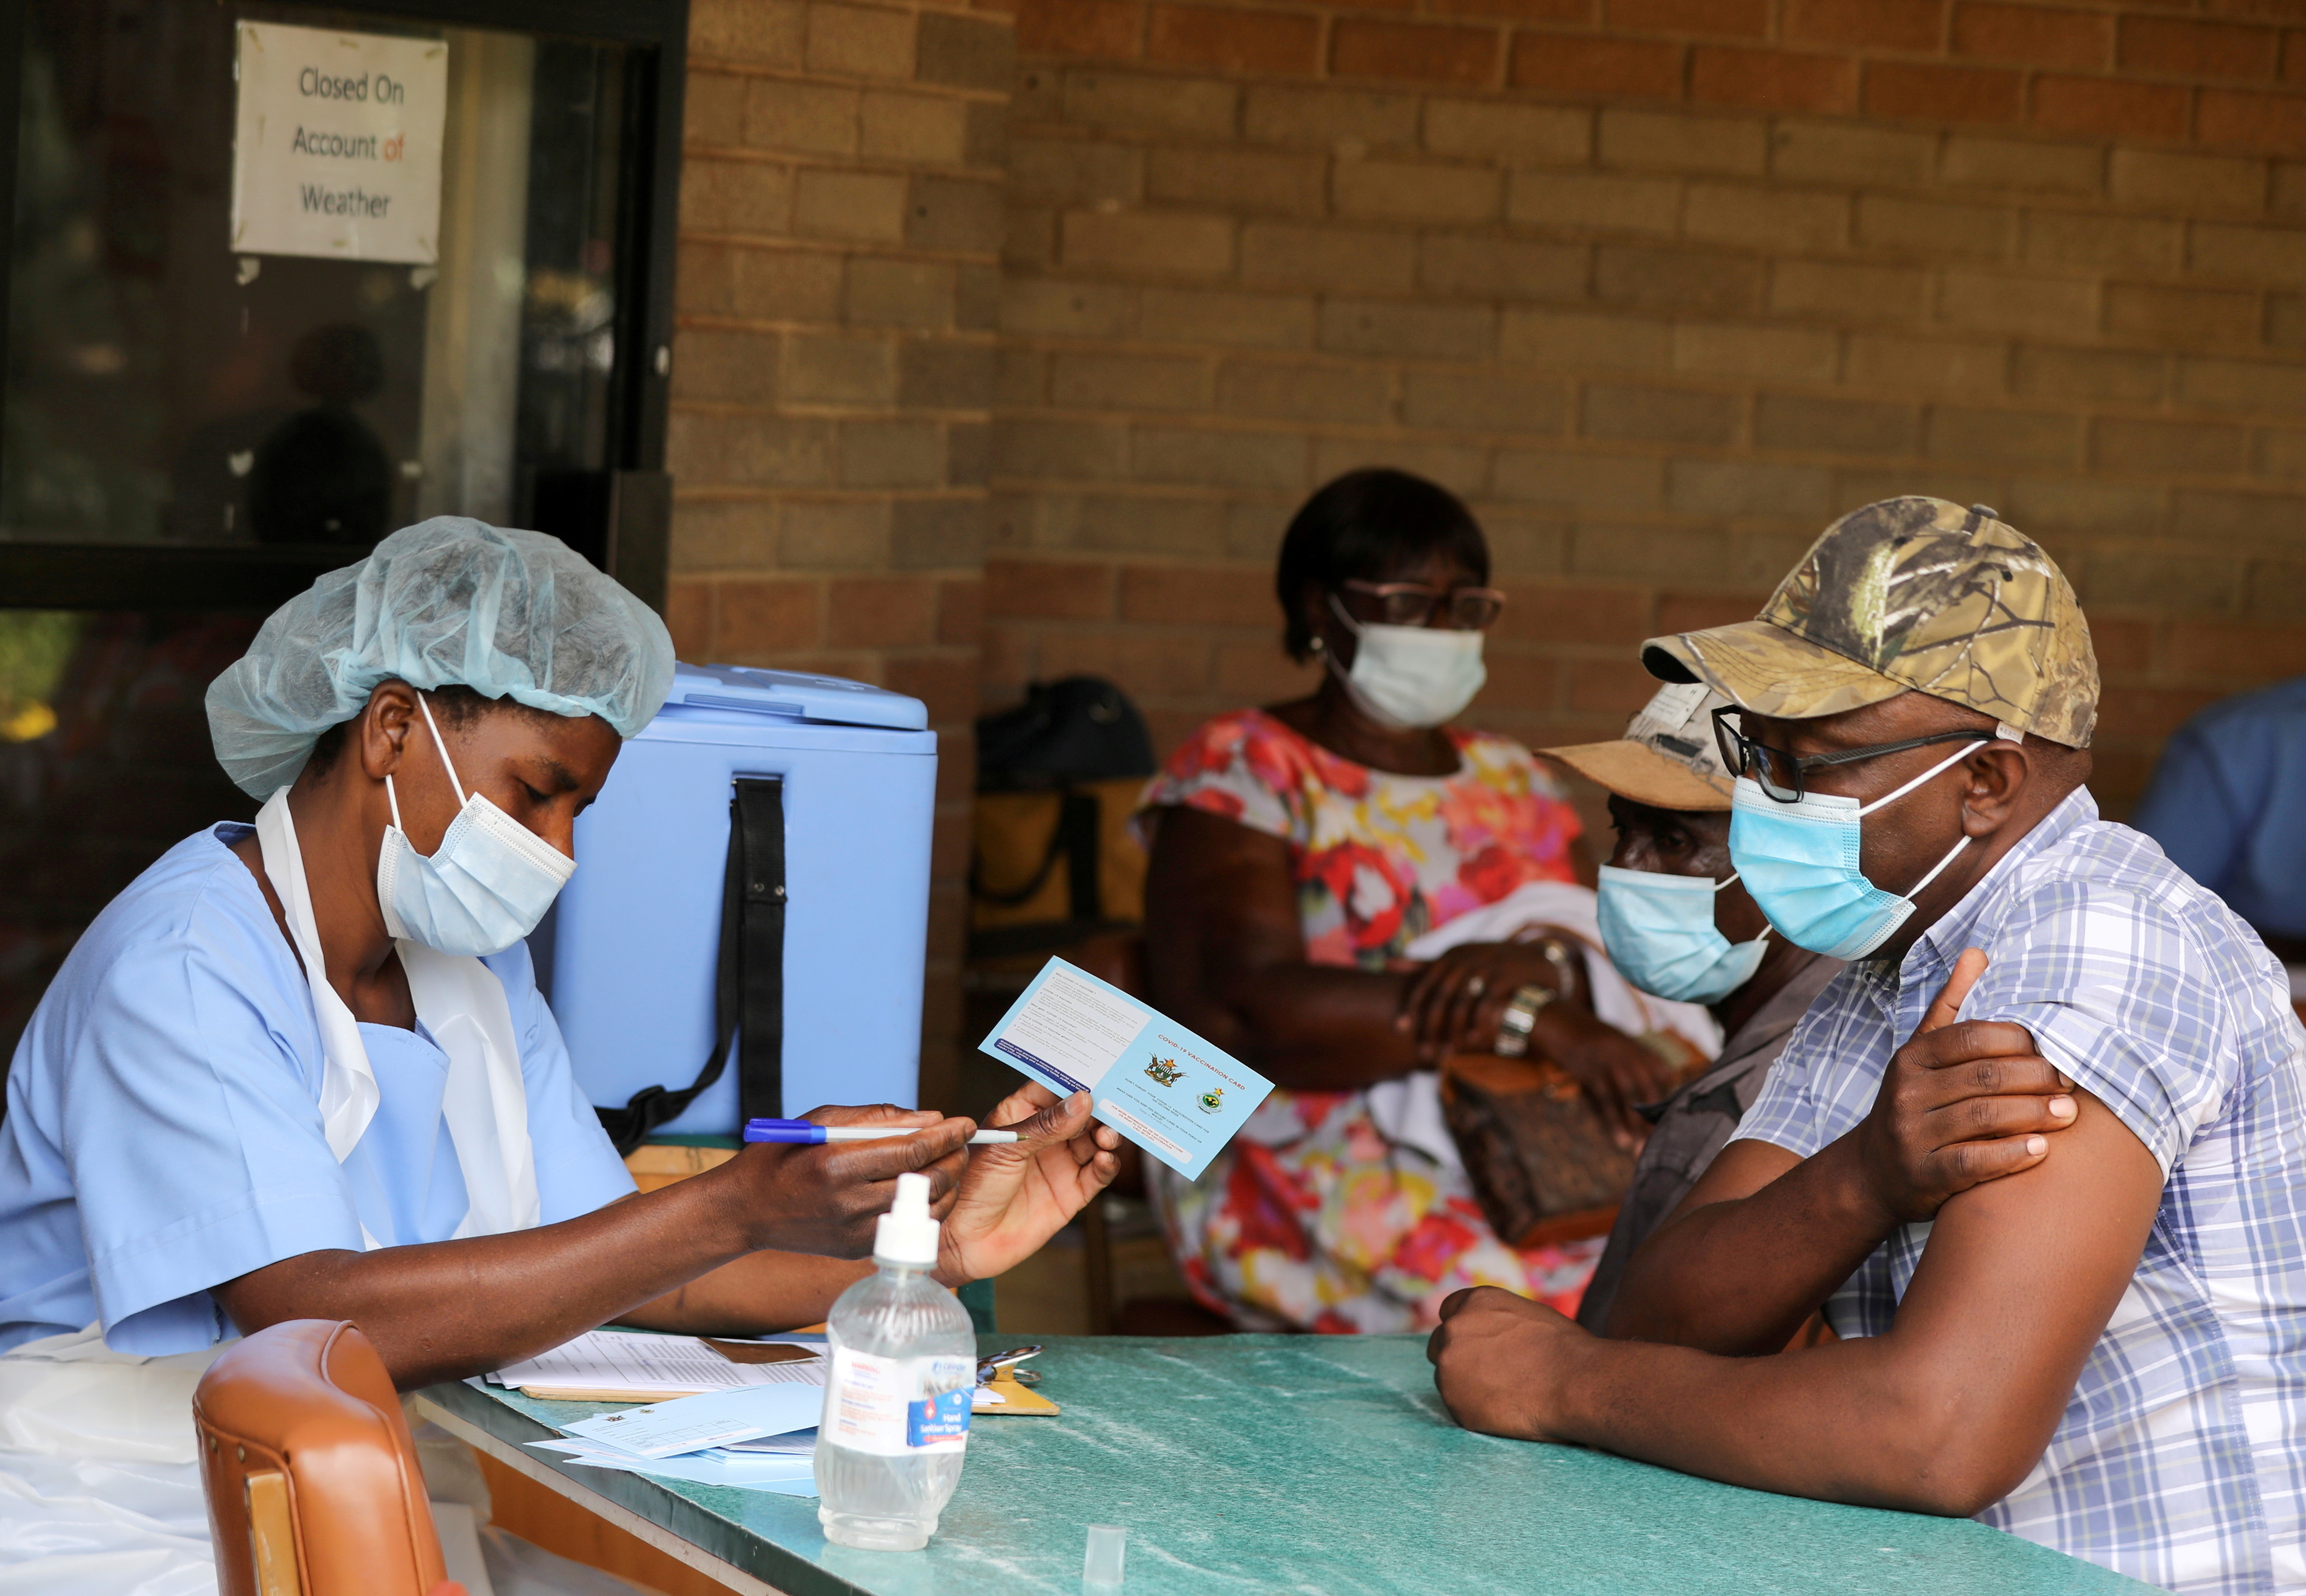 A man receives a certificate after being vaccinated against the coronavirus disease (COVID-19) at Wilkins Hospital in Harare, Zimbabwe, March 24, 2021. REUTERS/Philimon Bulawayo/File Photo